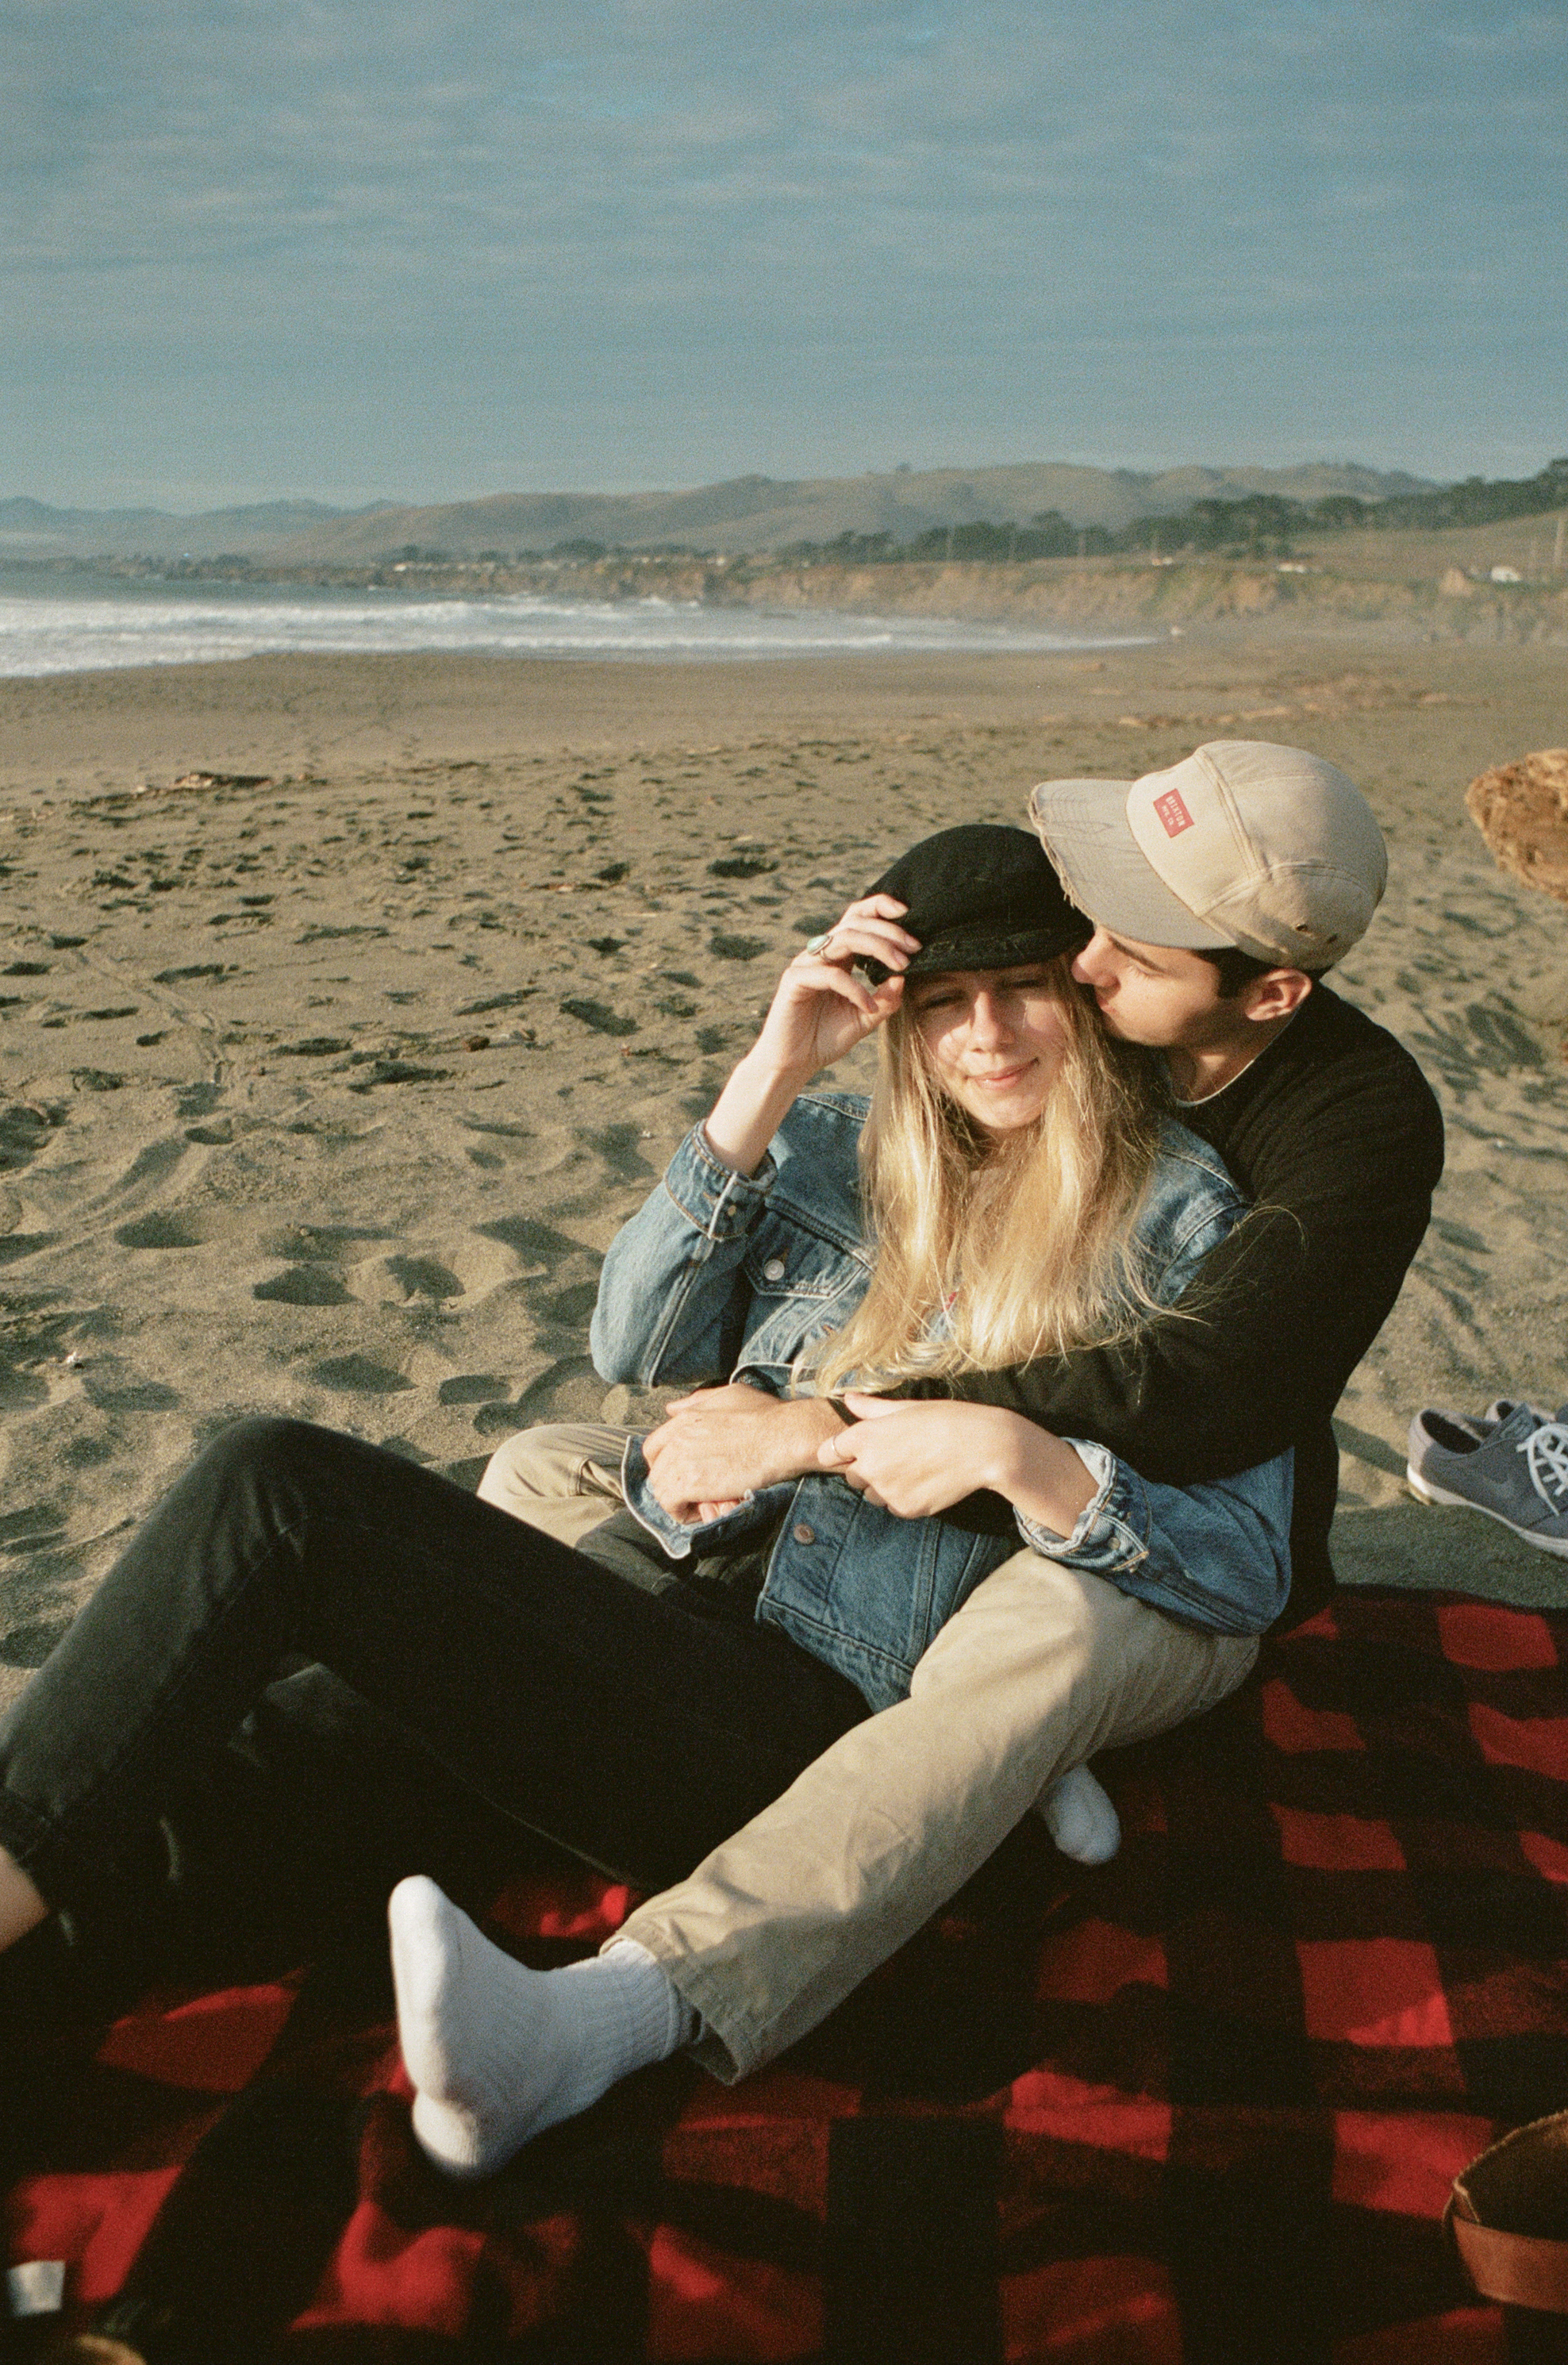 hannah&cole-california-film-jan2019-peytoncurry-000098780010.jpg